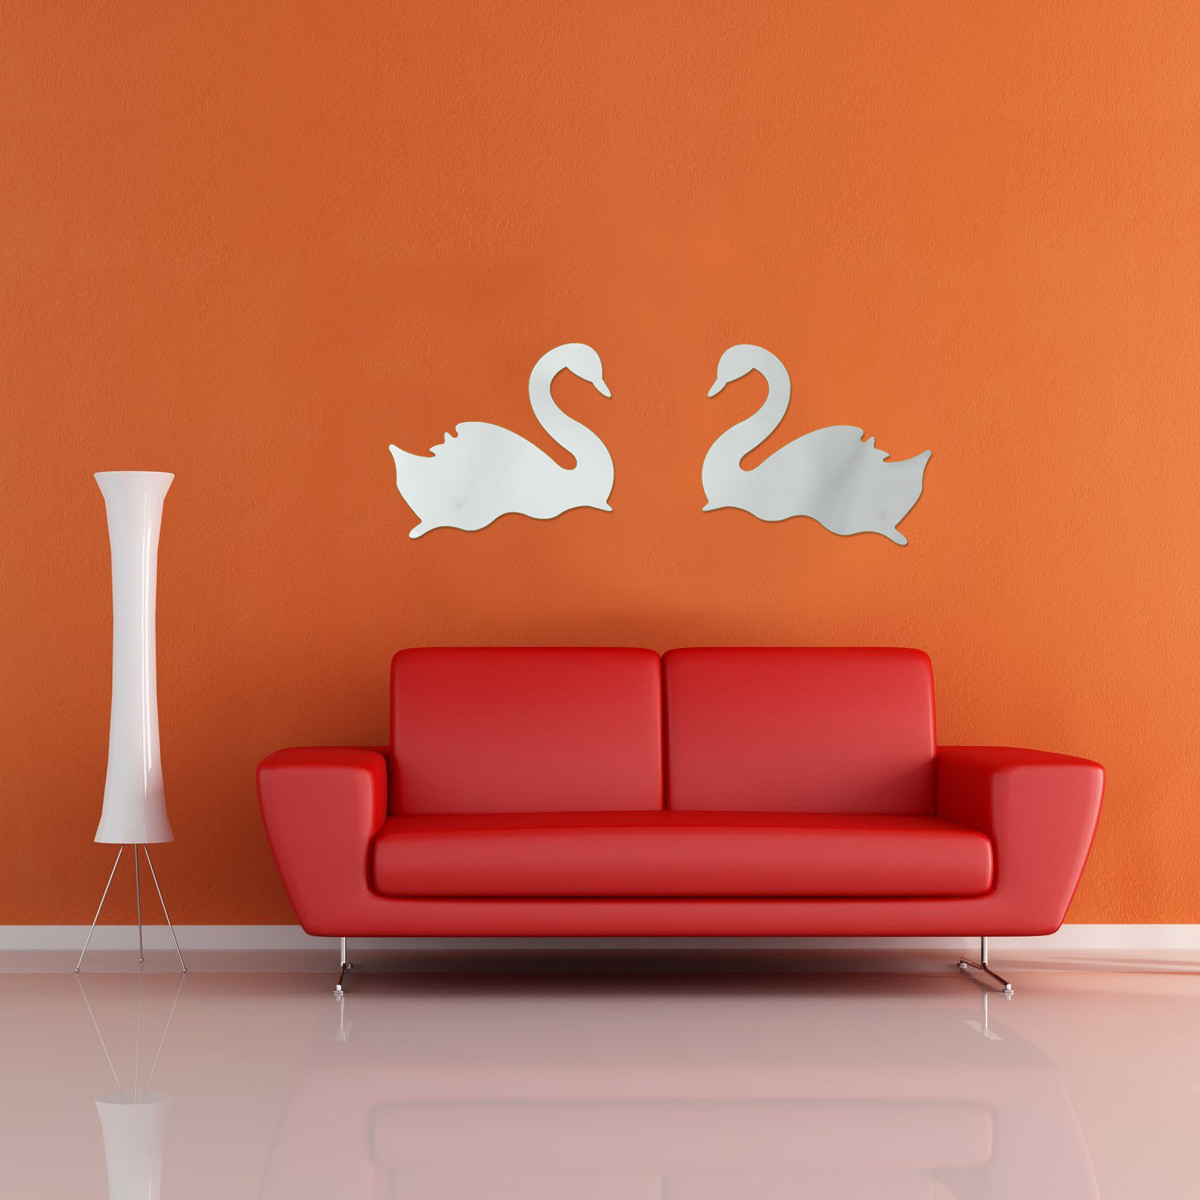 Diy silver modern mirror wall sticker cats square heart for Ebay decorations home